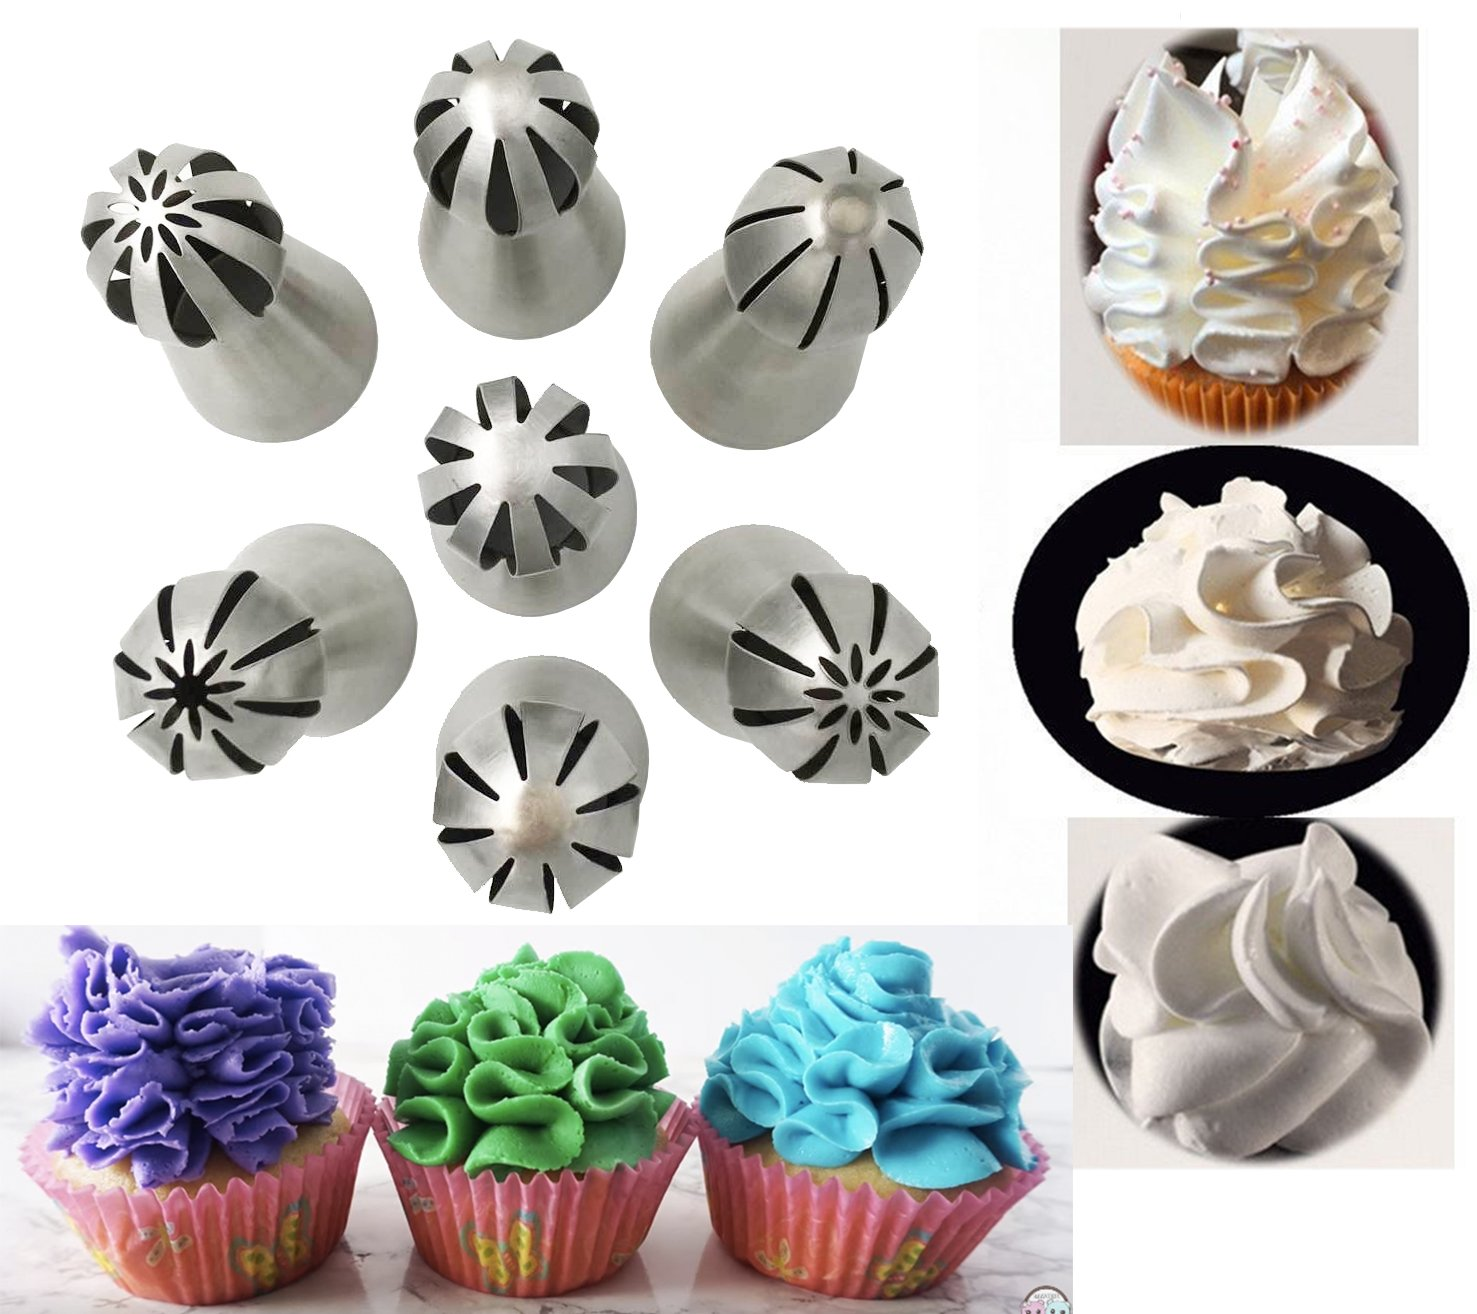 New JJMG Ball Russian Stainless Steel Tips Tulip Sphere Whip Cream Buttercream Icing Piping Nozzles DIY Baking Tools Small Torch for Decoration Cupcake Fondant Cake Pastry (7 pcs Ball Russian tips)